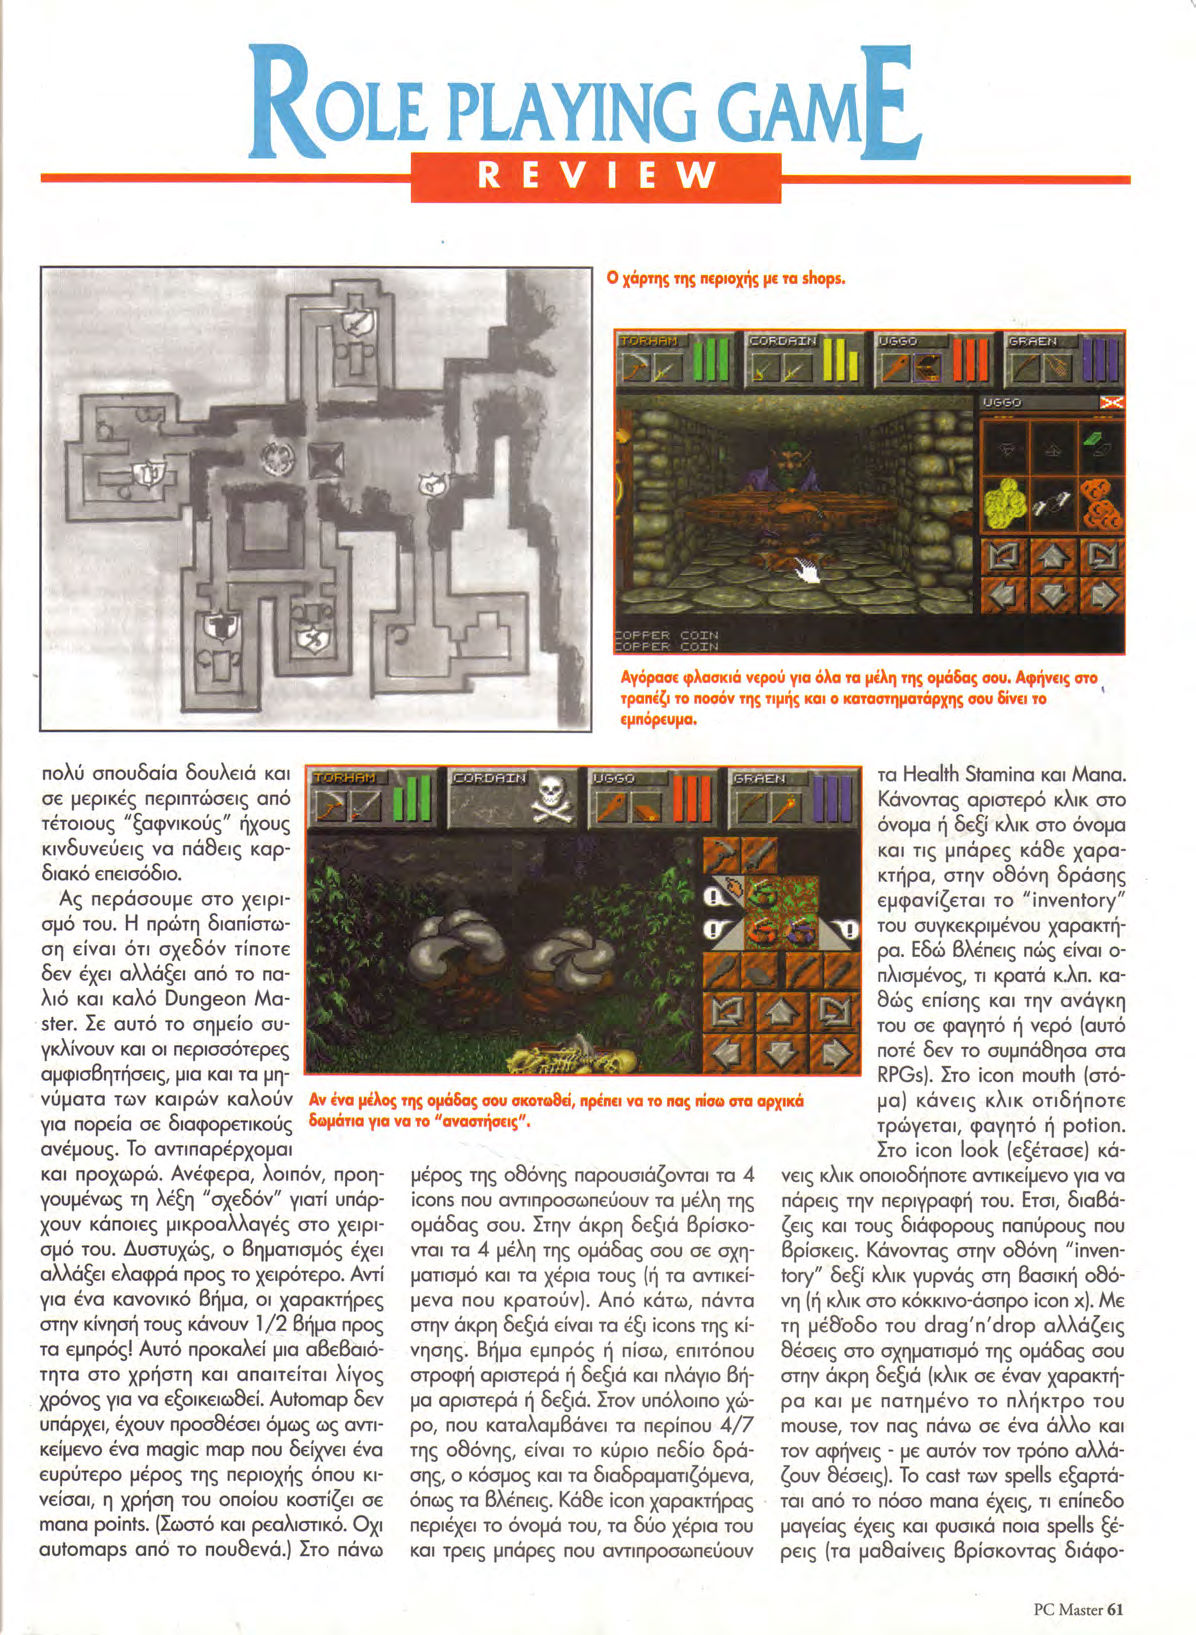 Dungeon Master II for PC Review published in Greek magazine 'PC Master', Issue #67 November 1995, Page 61